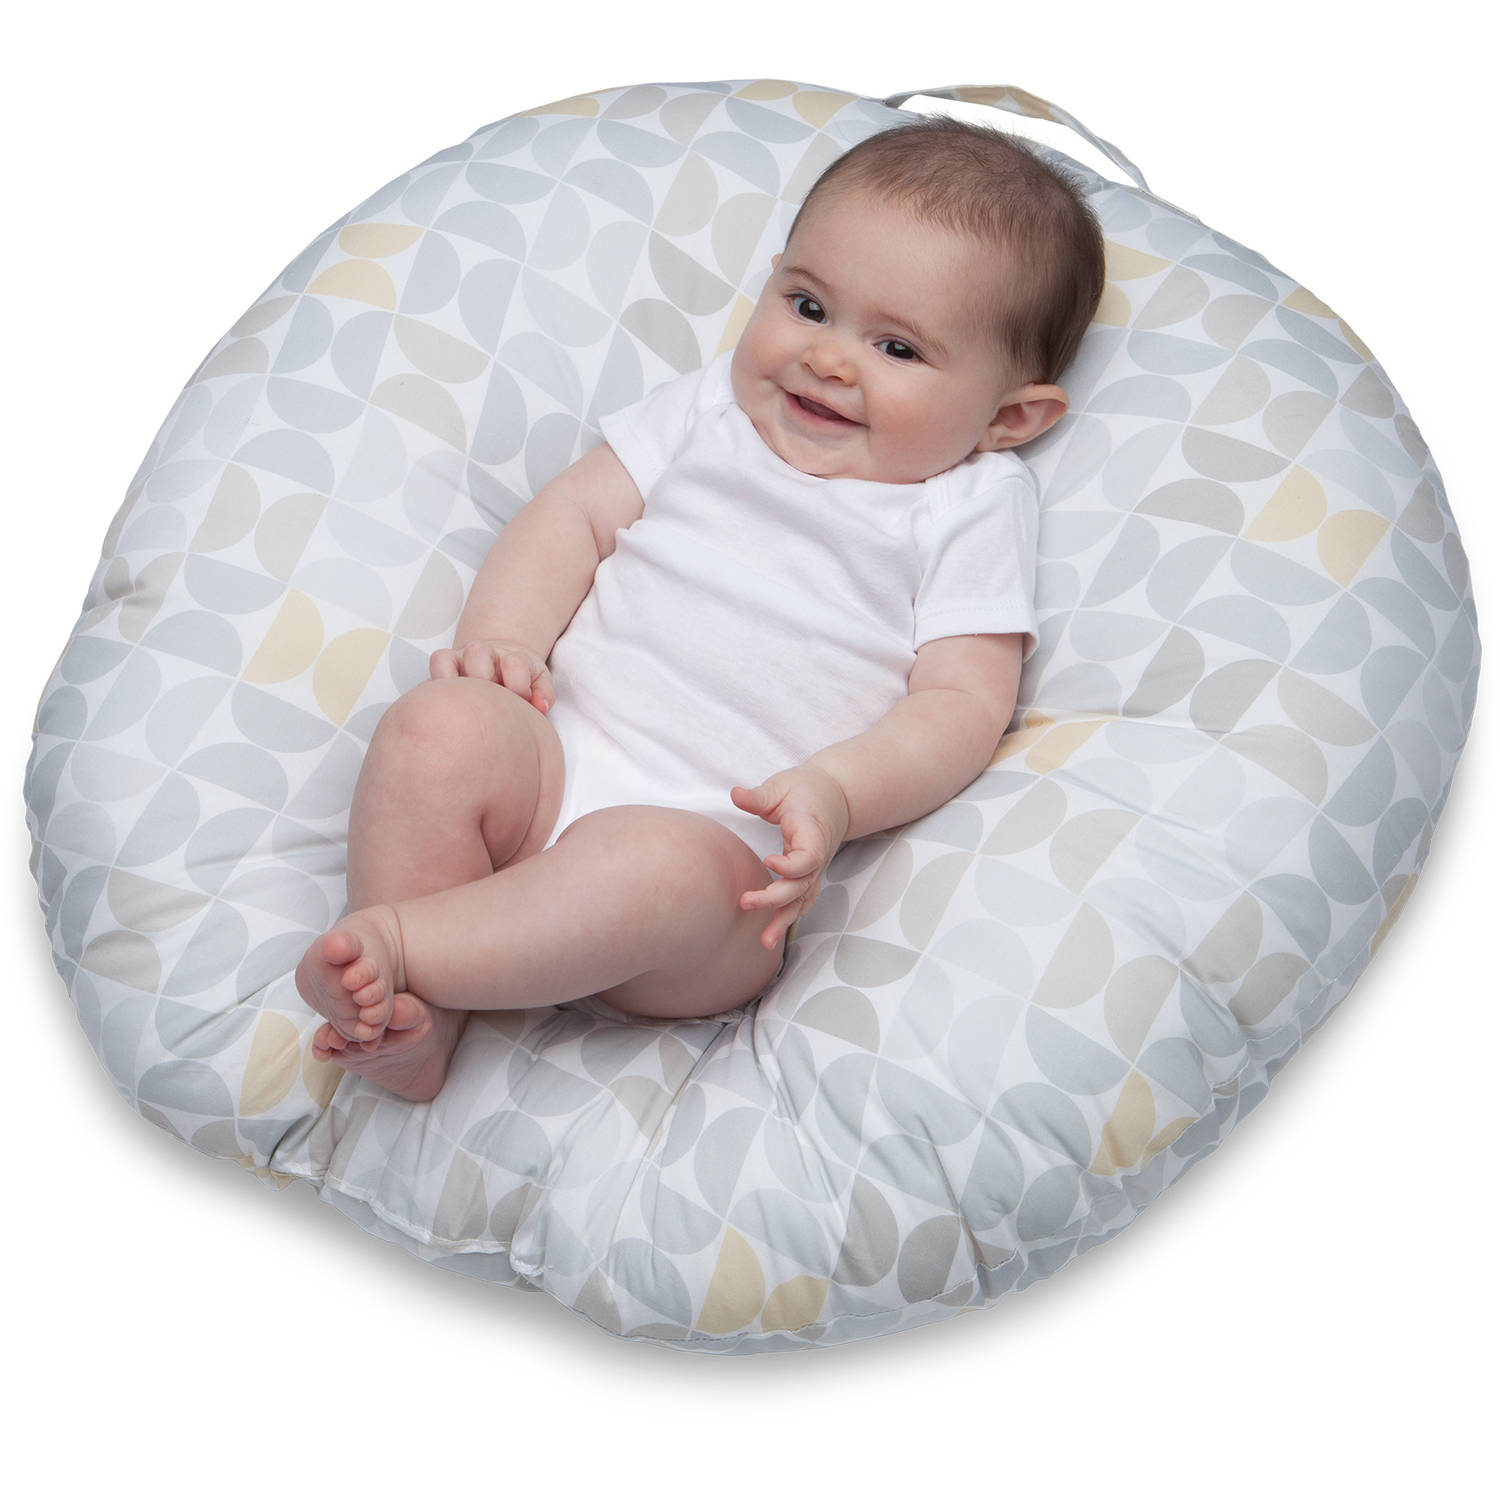 baby boppy chair recall covers round back buy newborn lounger propeller cheapest deals and reviews